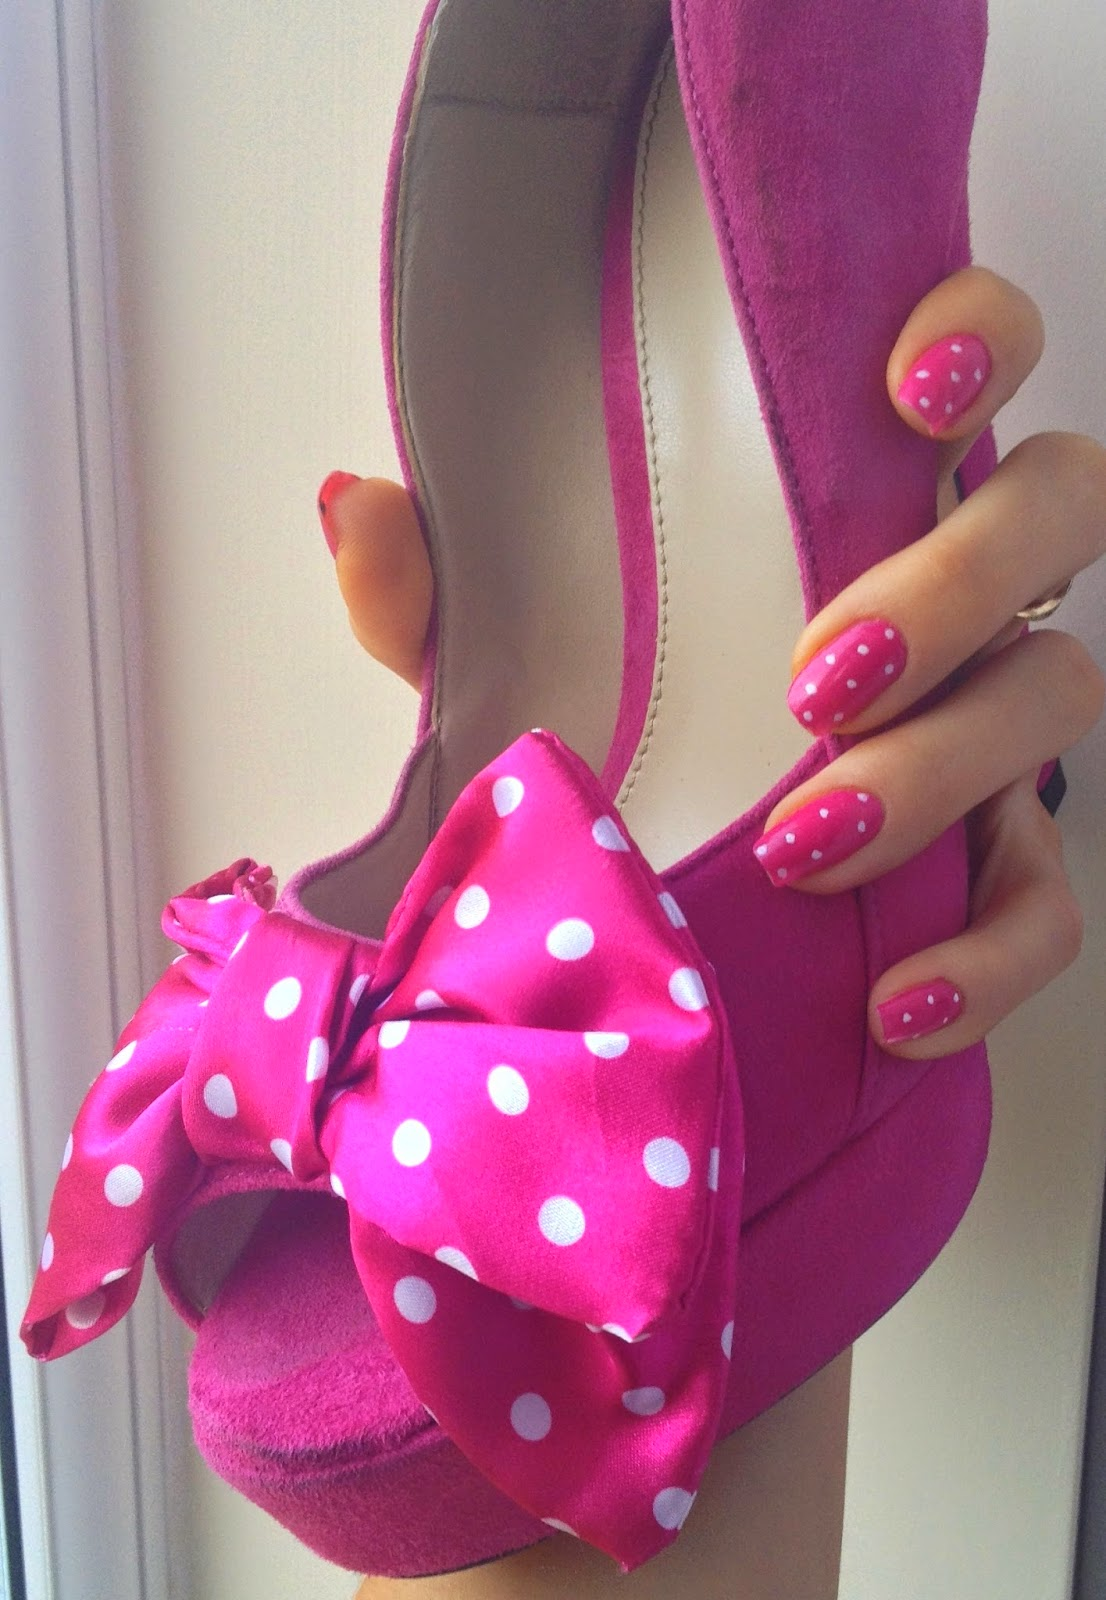 Polka-dot-pink-nails-and-shoe